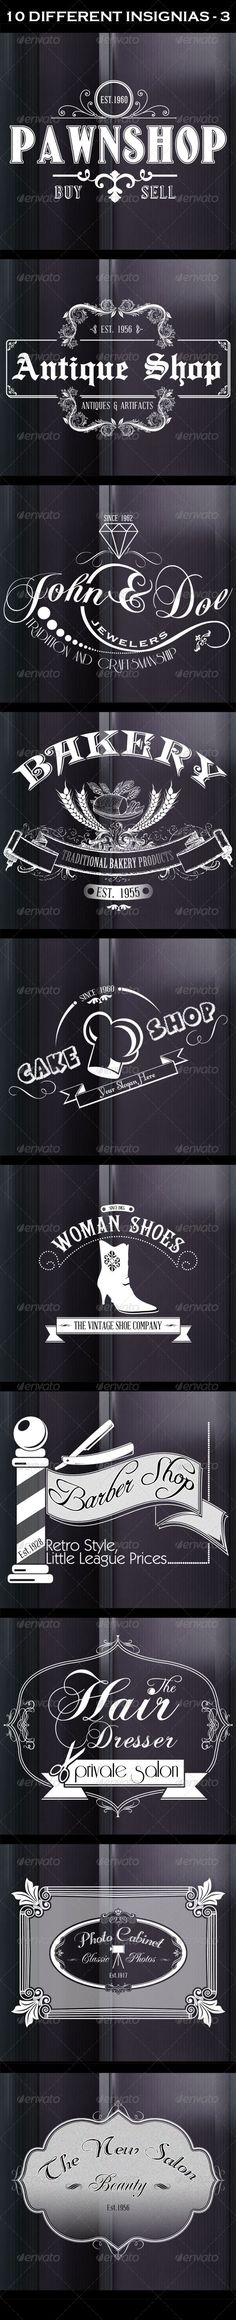 10 Retro Insignias #GraphicRiver 10 retro style signs or banners perfect to use as logos, labels, poster, flyer or sticker, packaging product design, or as promotion graphics for your website or print design. Great for photography overlay signs. Completely editable, and resizable. The main file includes: 10 Photoshop insignias (badges) files 10 eps vector files 10 png high rezolution file